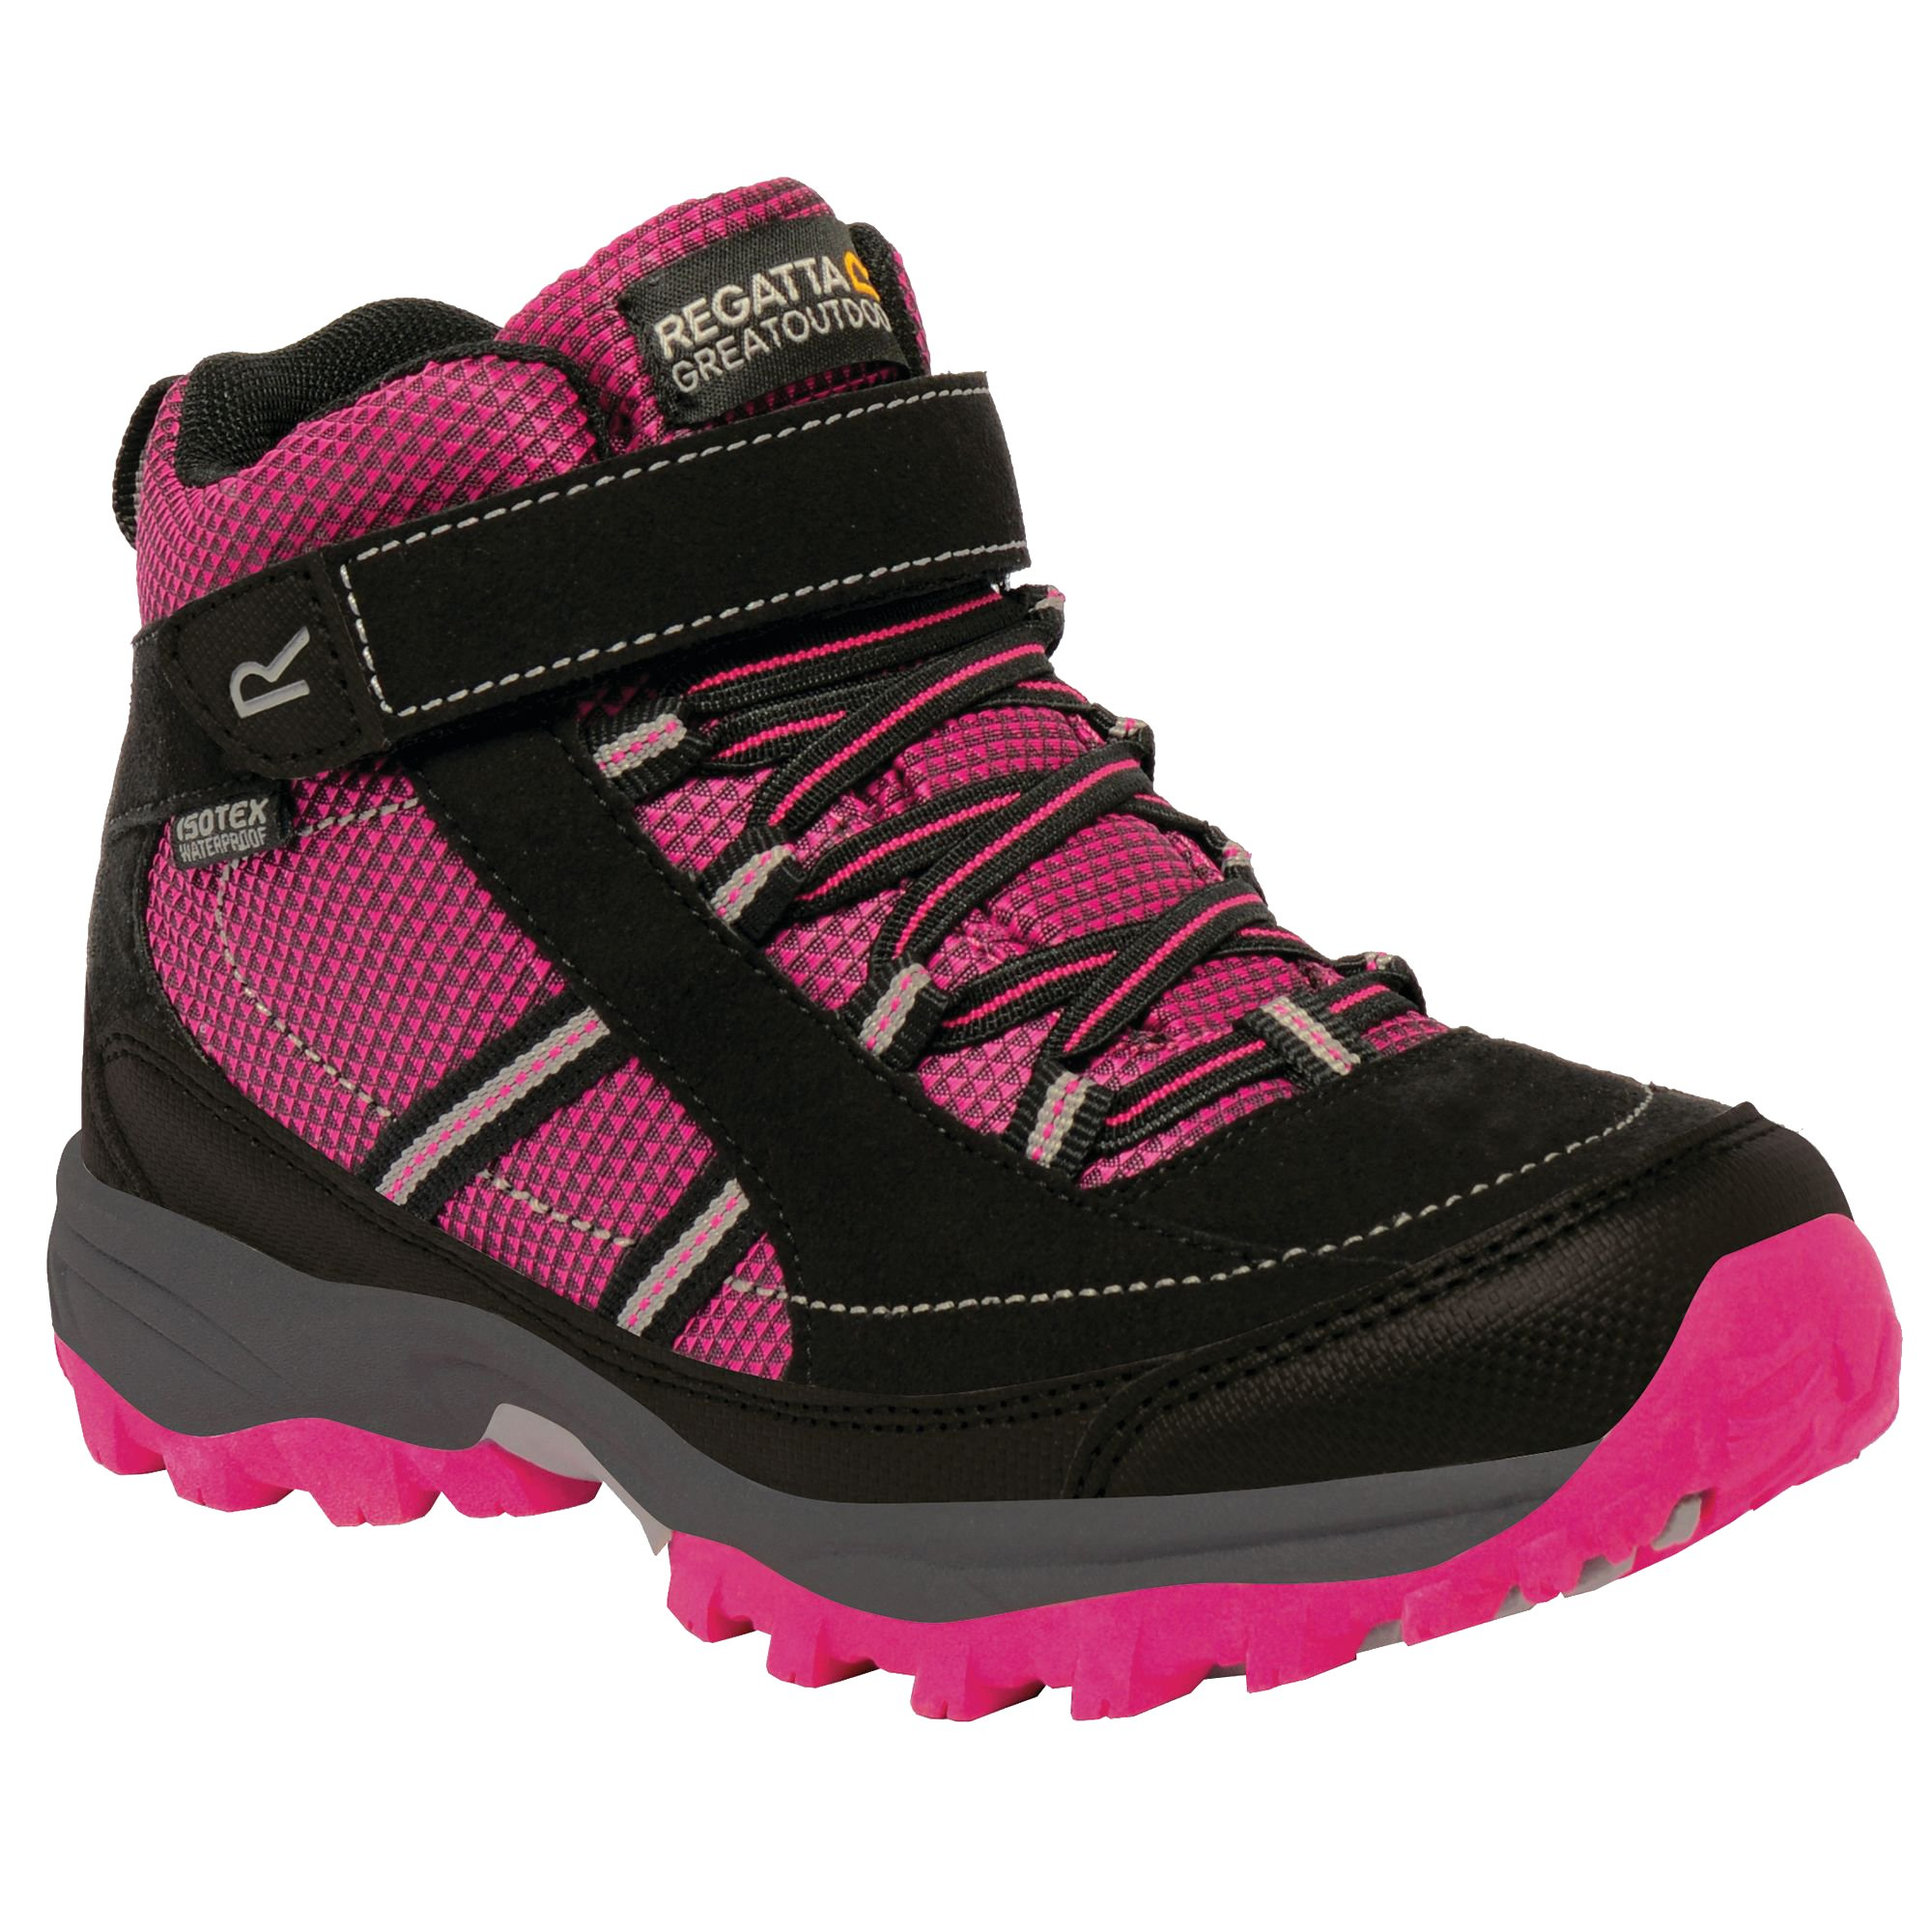 Regatta Great Outdoors Childrens/Kids Trailspace II Mid Walking Boots (US 7) (Briar/Lime Punch)